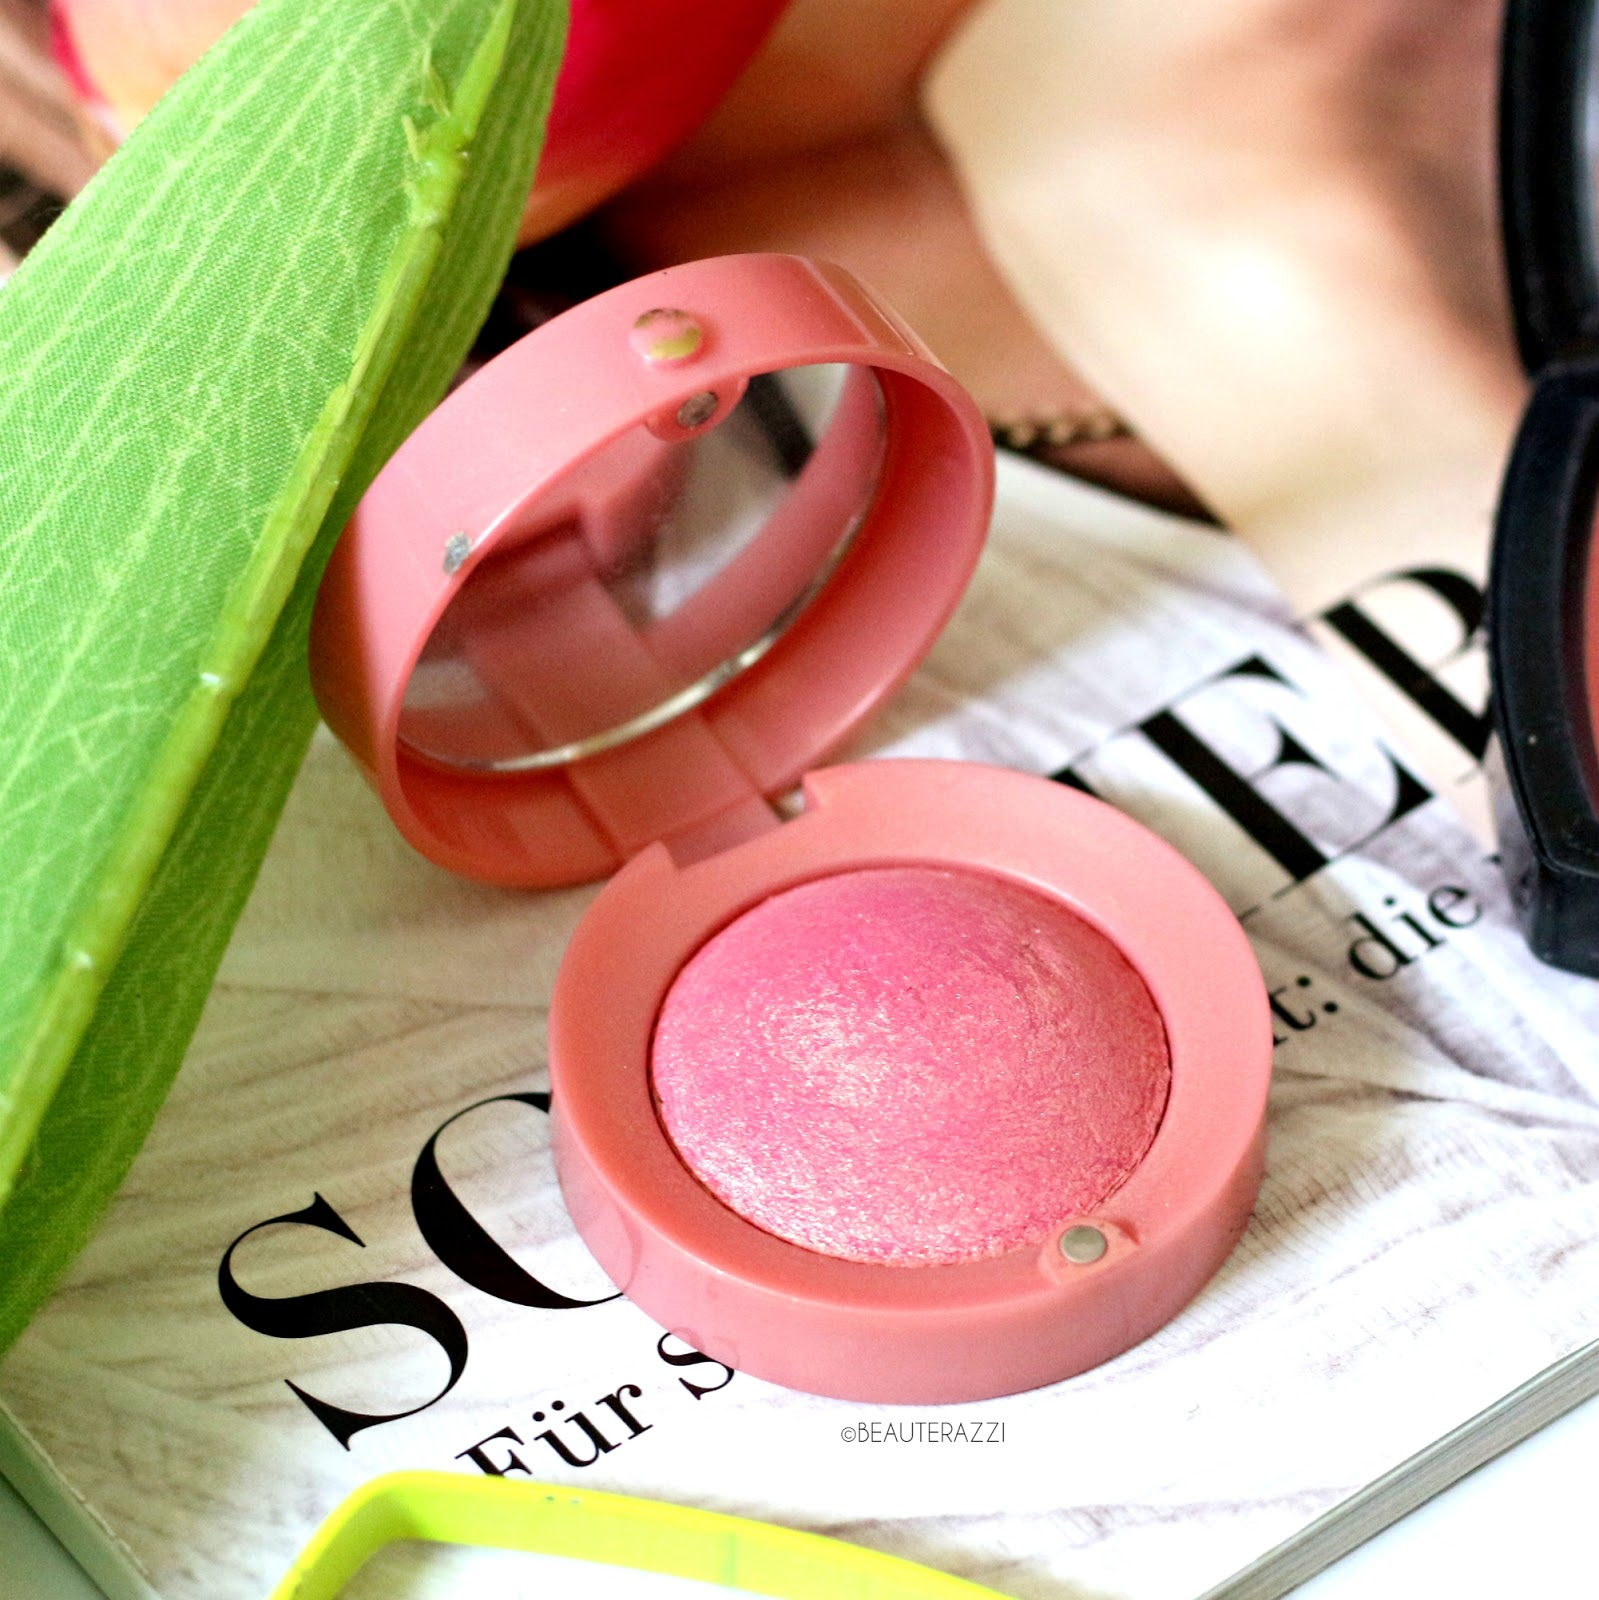 Bourjois Little Round Blush in 'Rose D'Or'